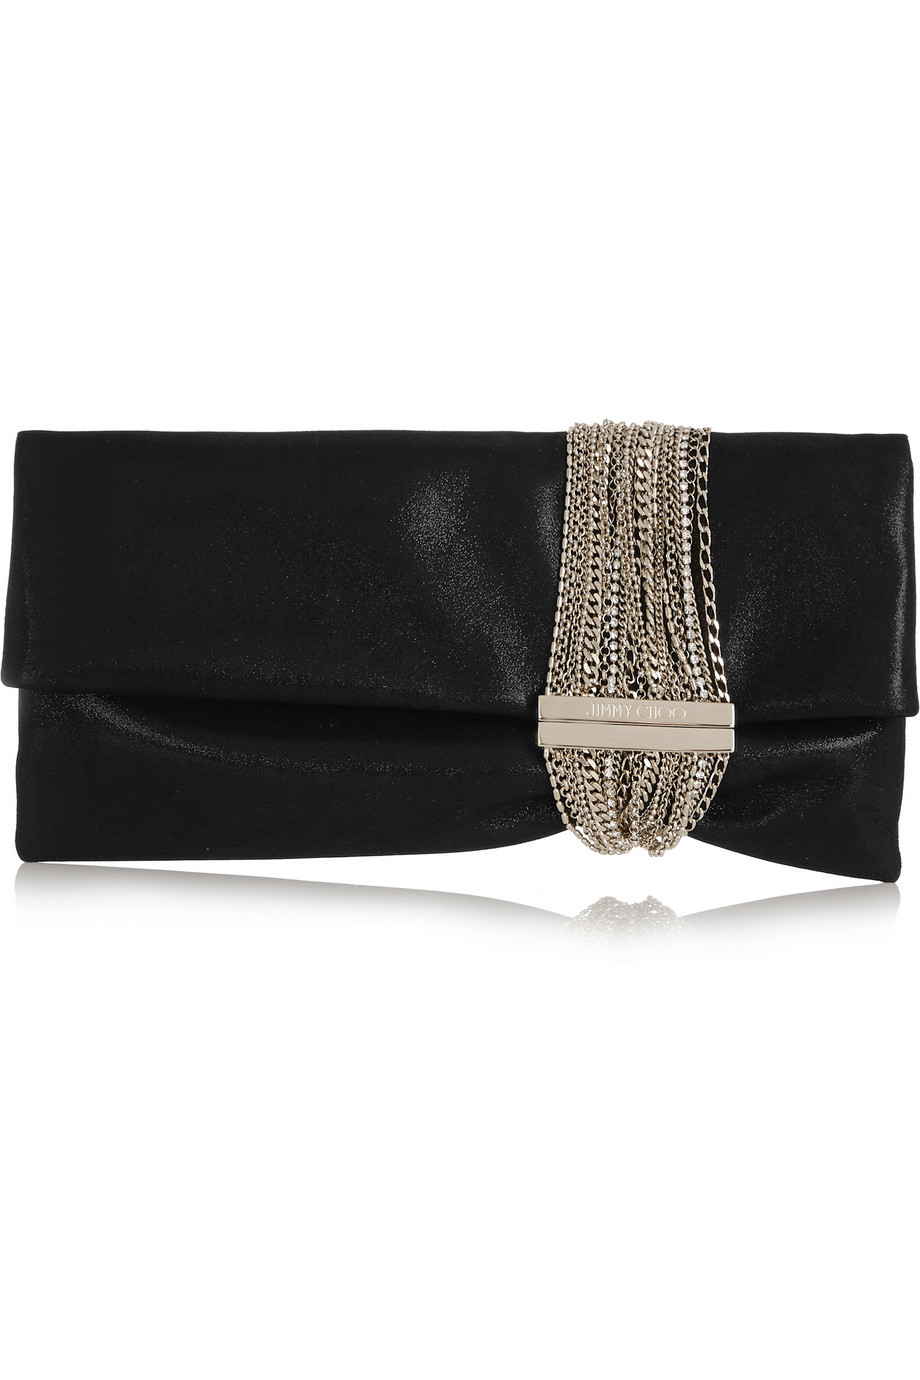 jimmy choo chandra chain embellished shimmer suede clutch in black lyst. Black Bedroom Furniture Sets. Home Design Ideas